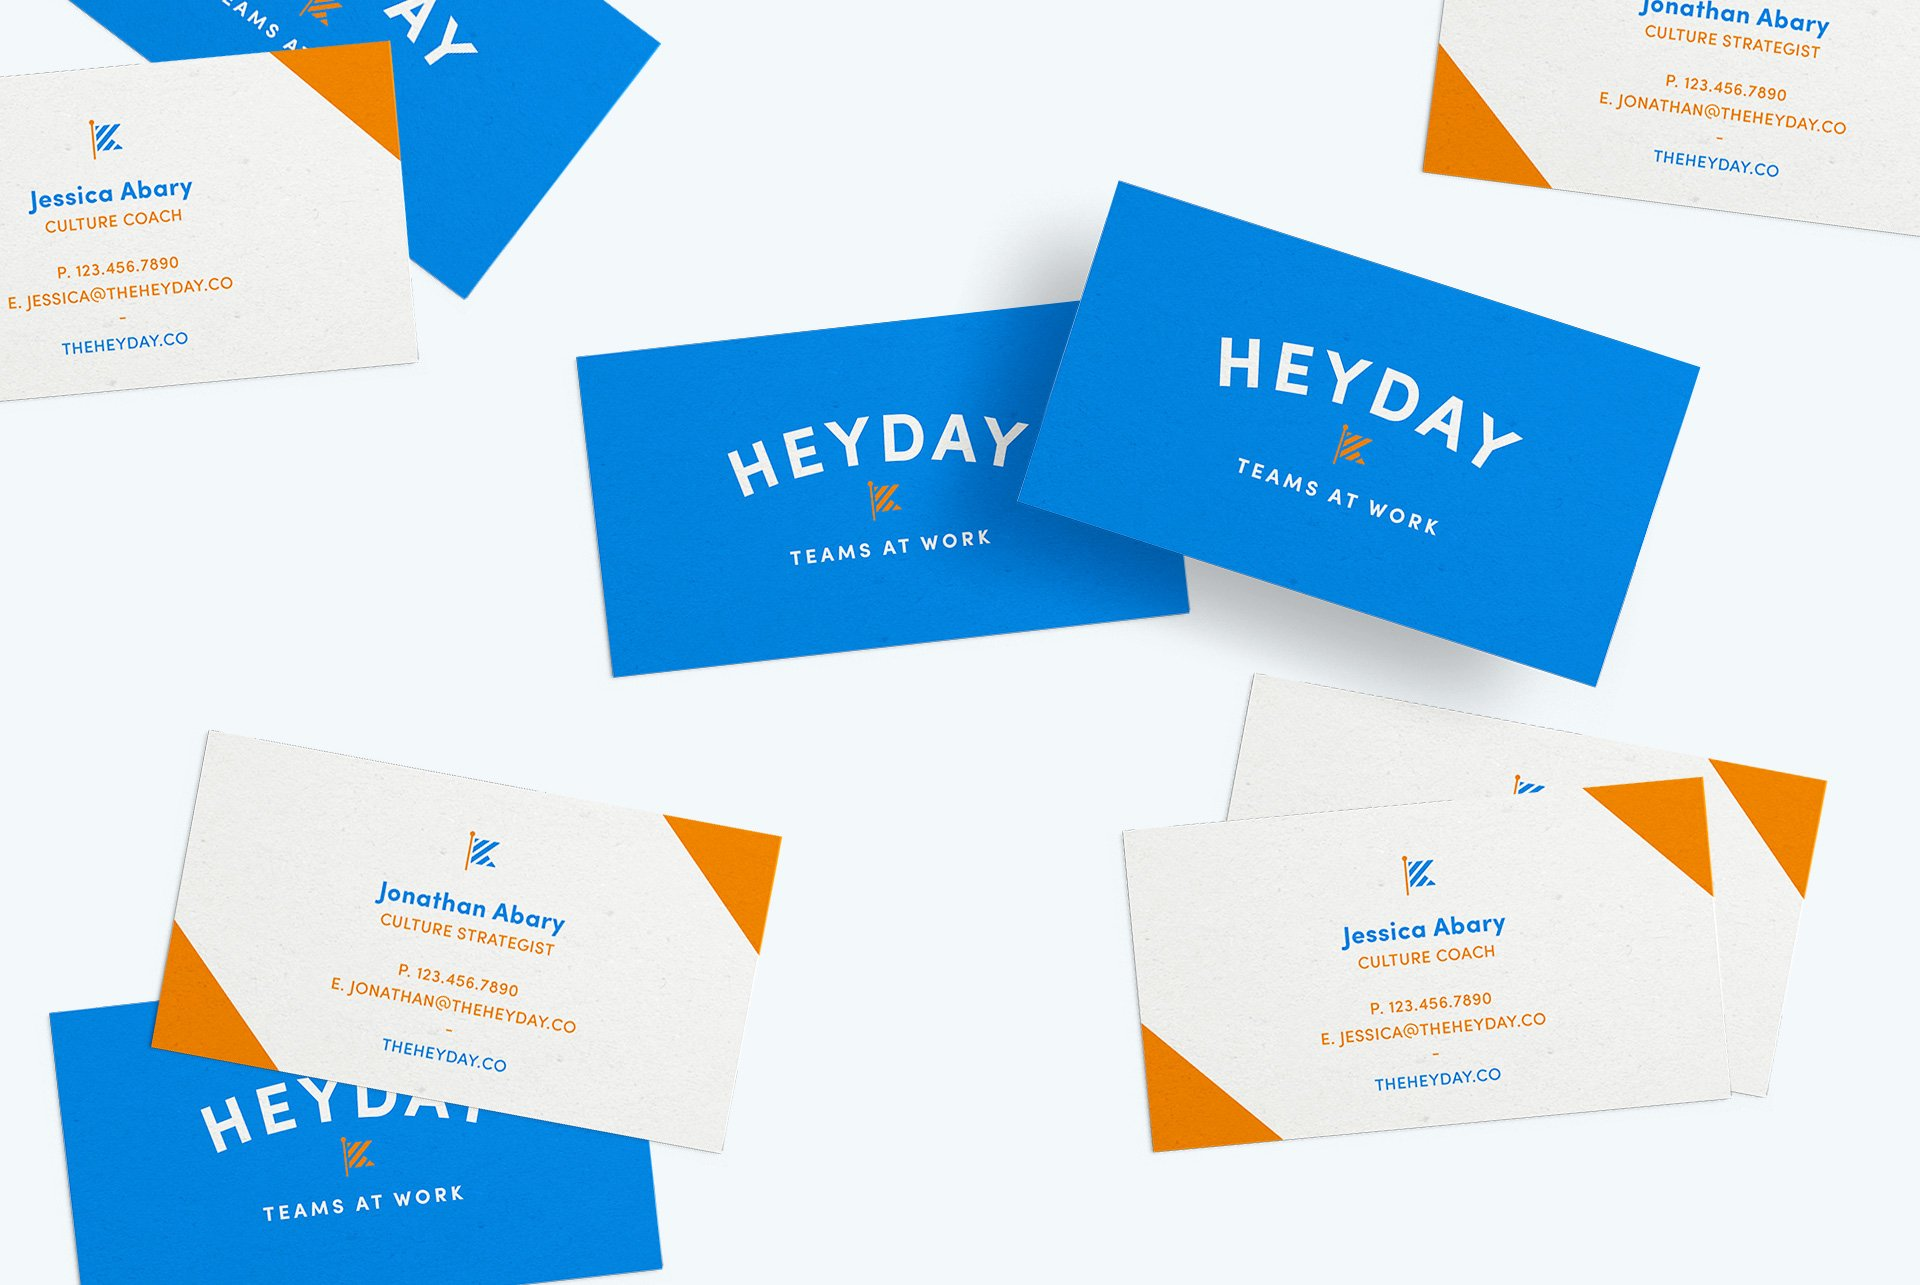 heyday business cards